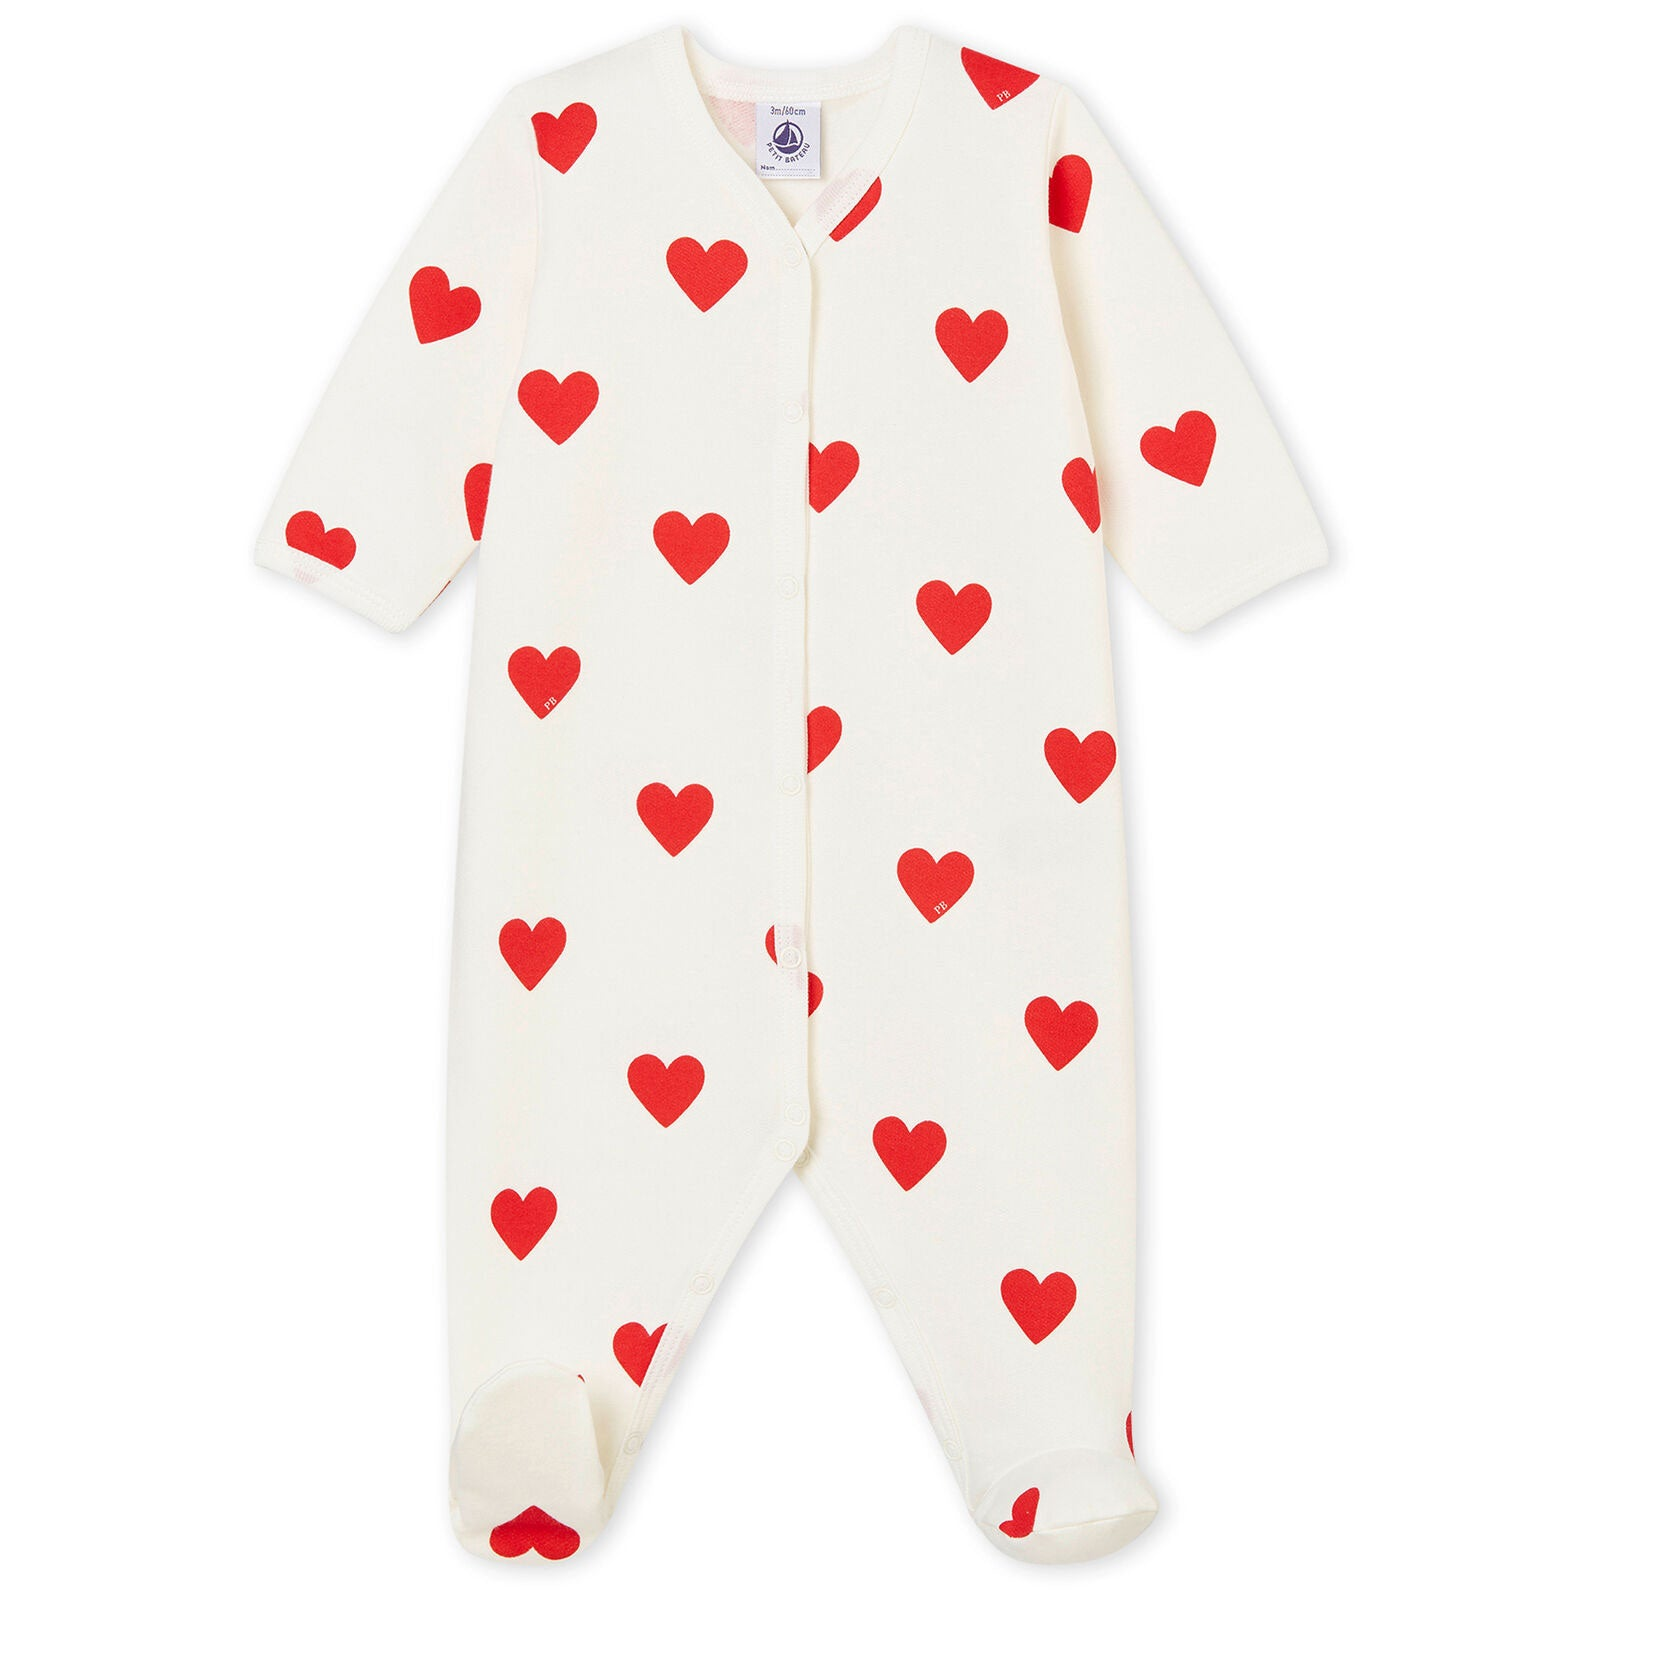 Heart Baby Romper by Petit Bateau at Bonjour Baby Baskets